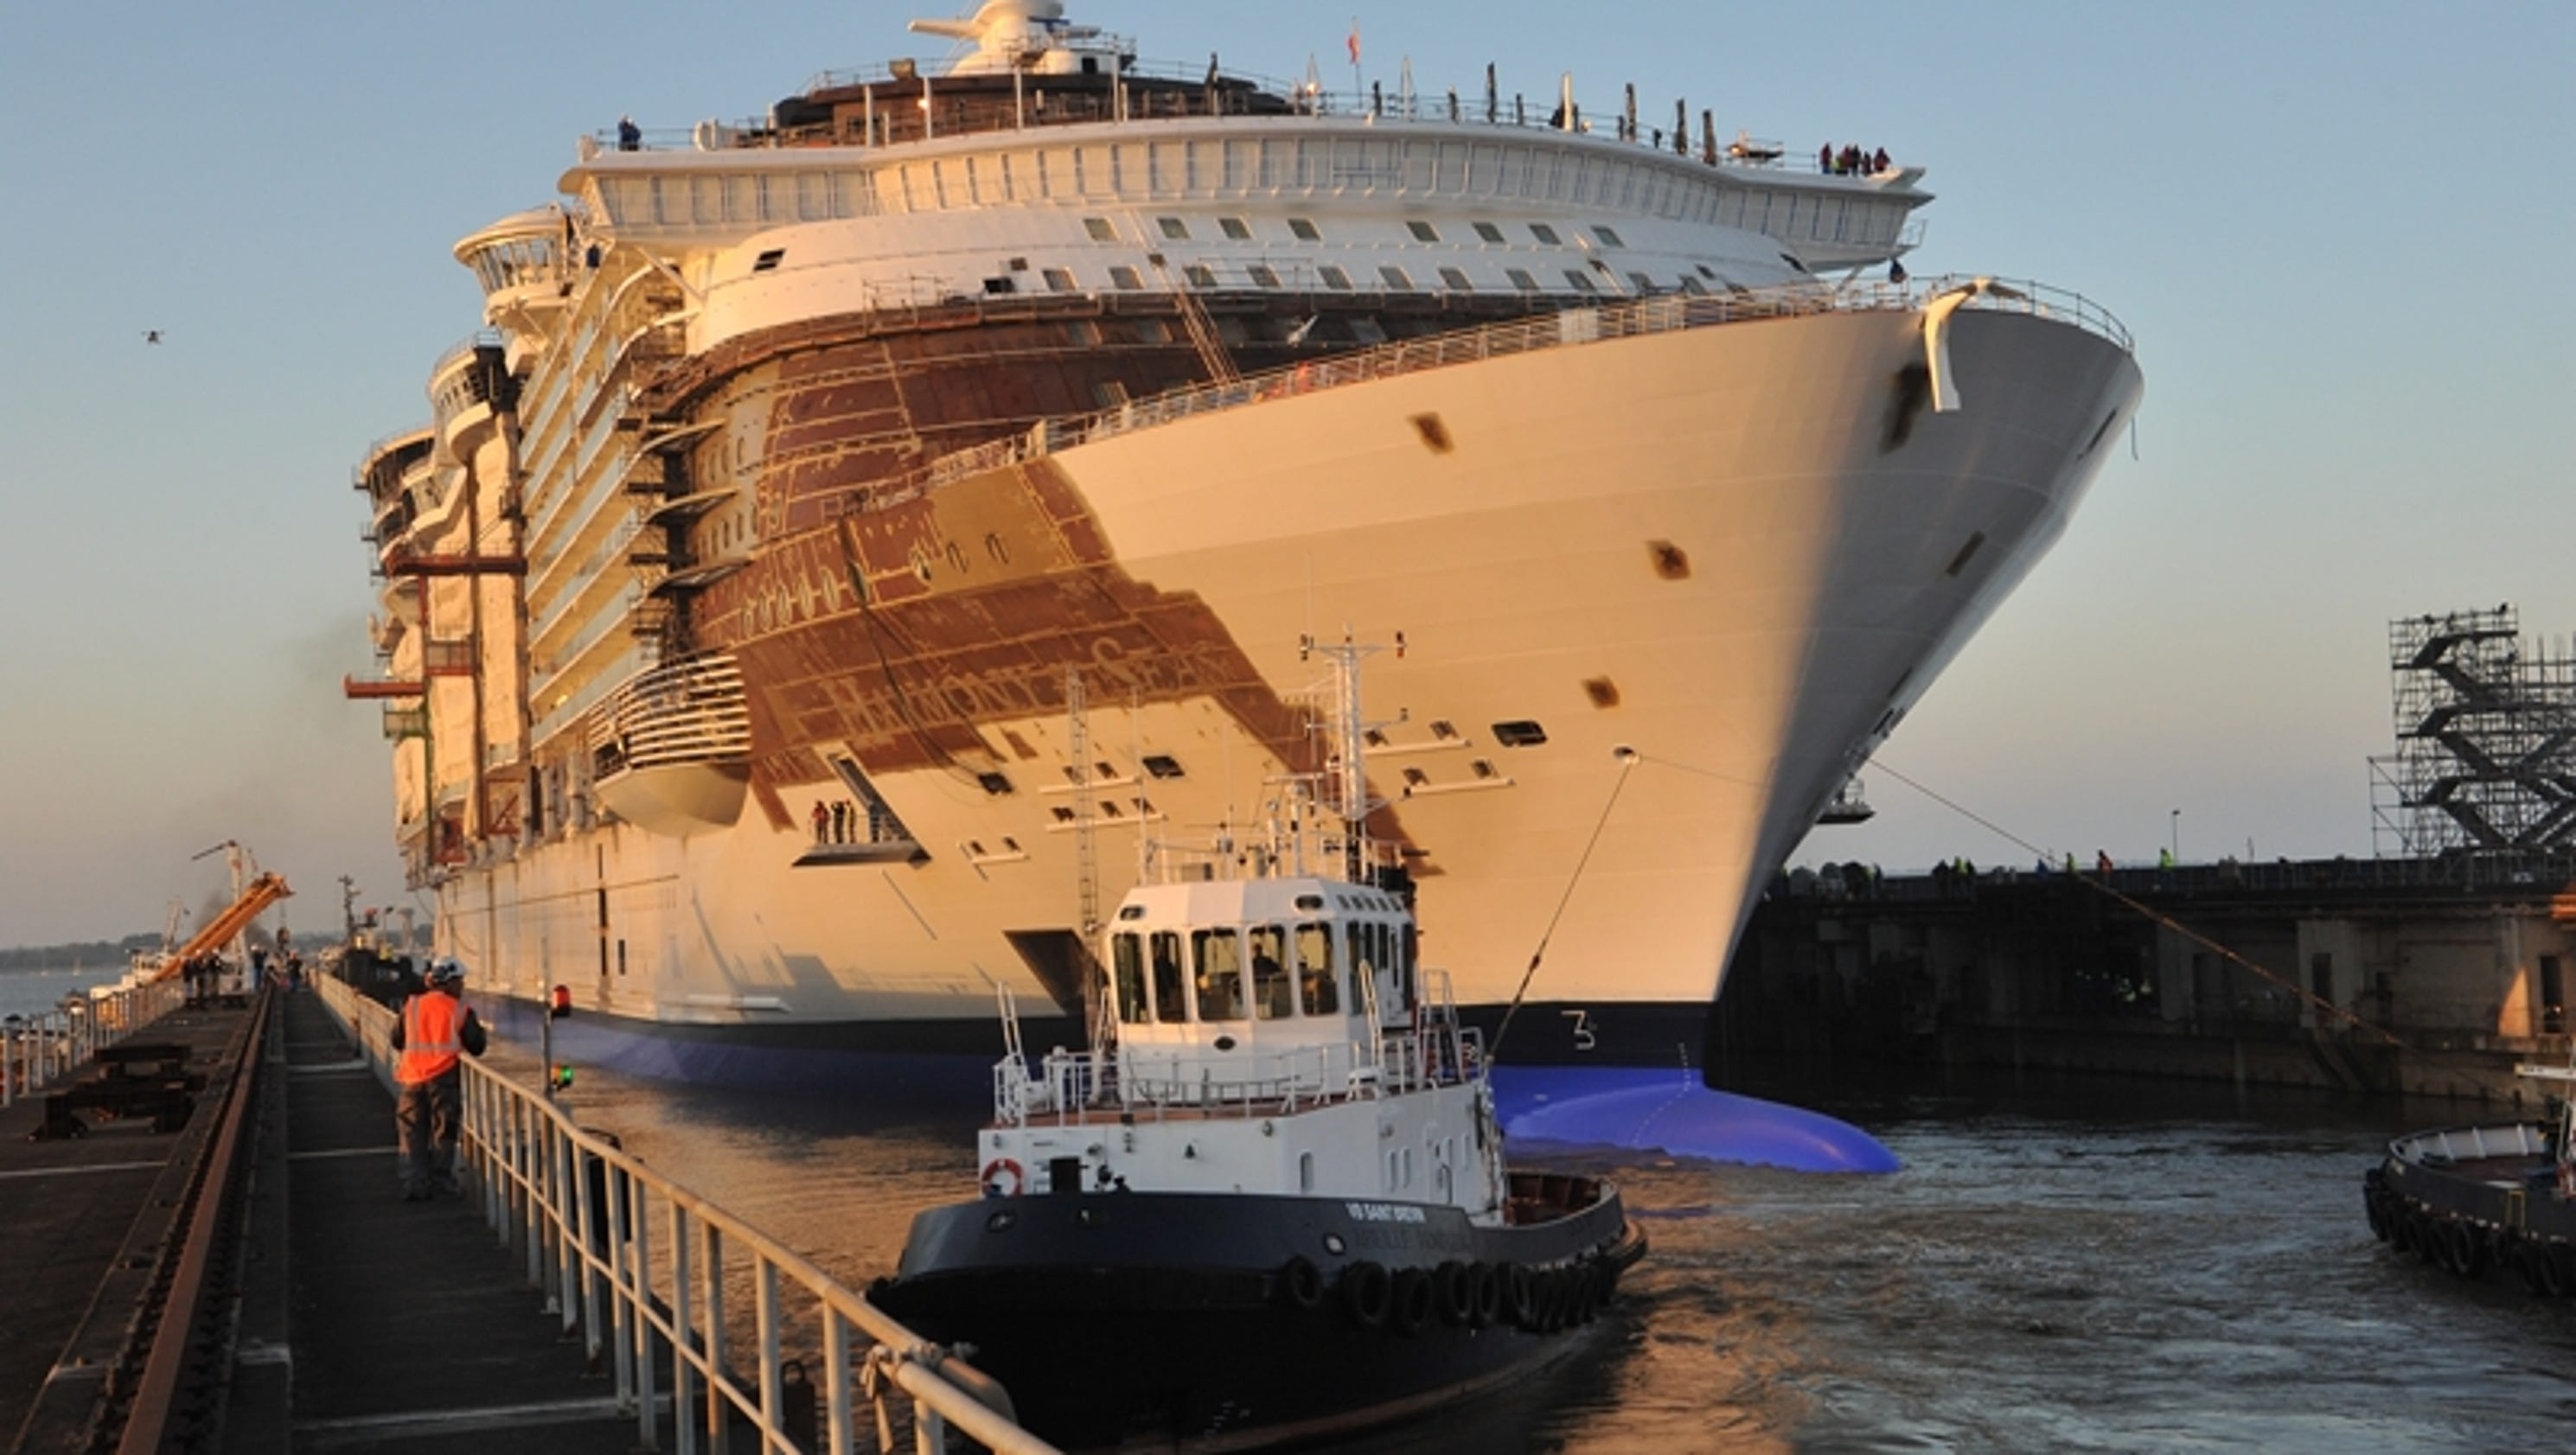 The making of the world 39 s largest cruise ship for World s longest video